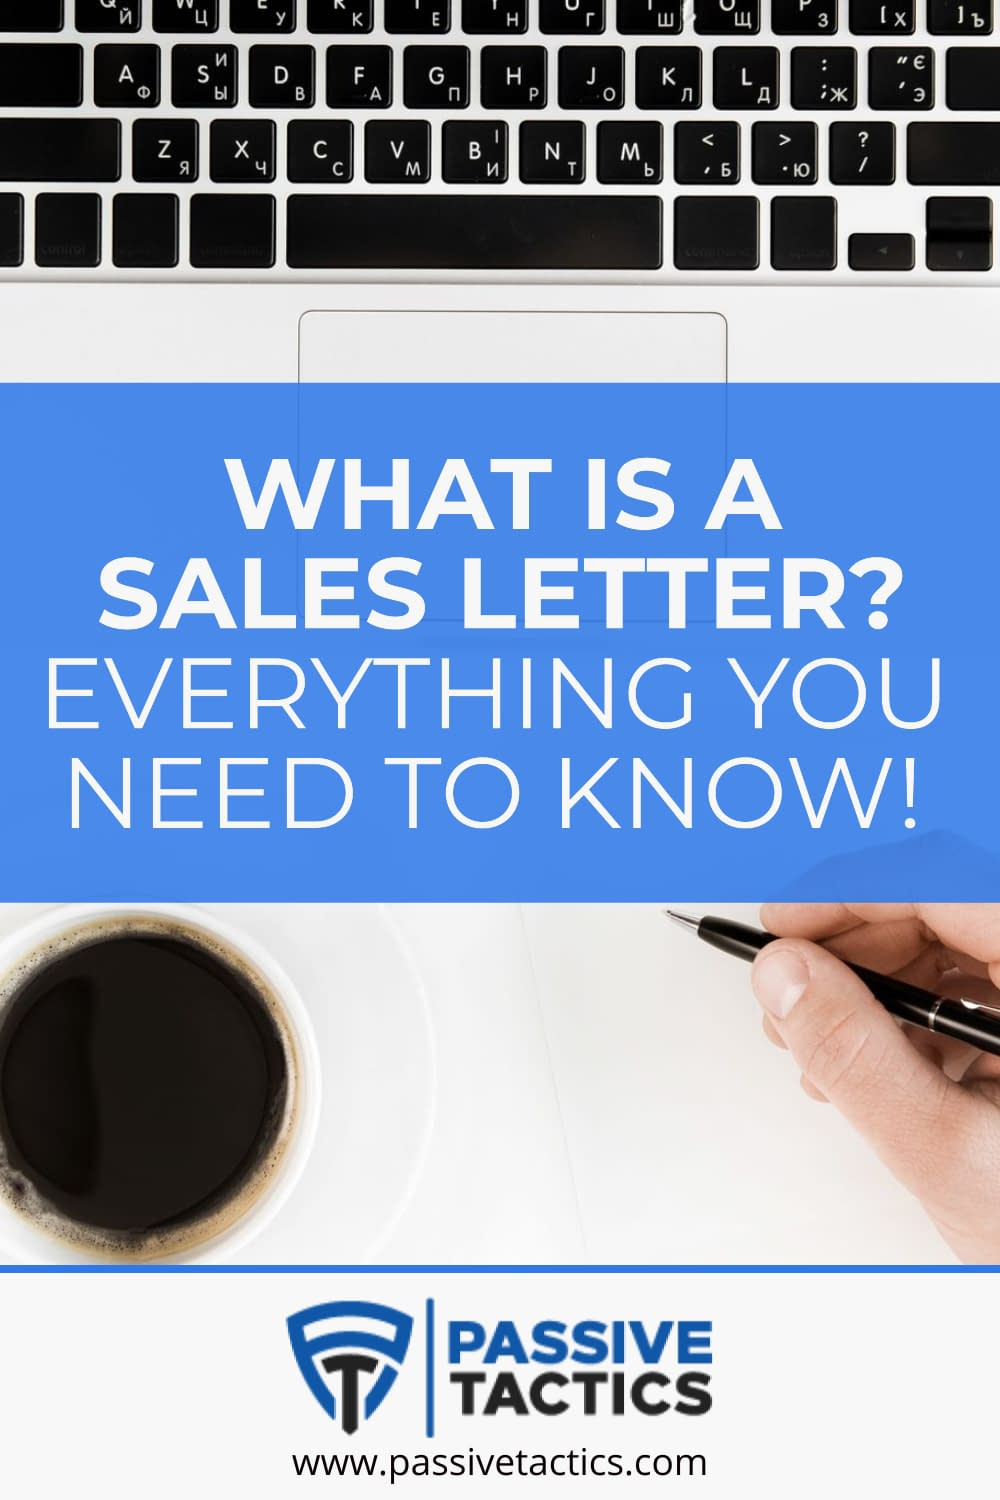 What Is A Sales Letter? Everything You Need To Know!